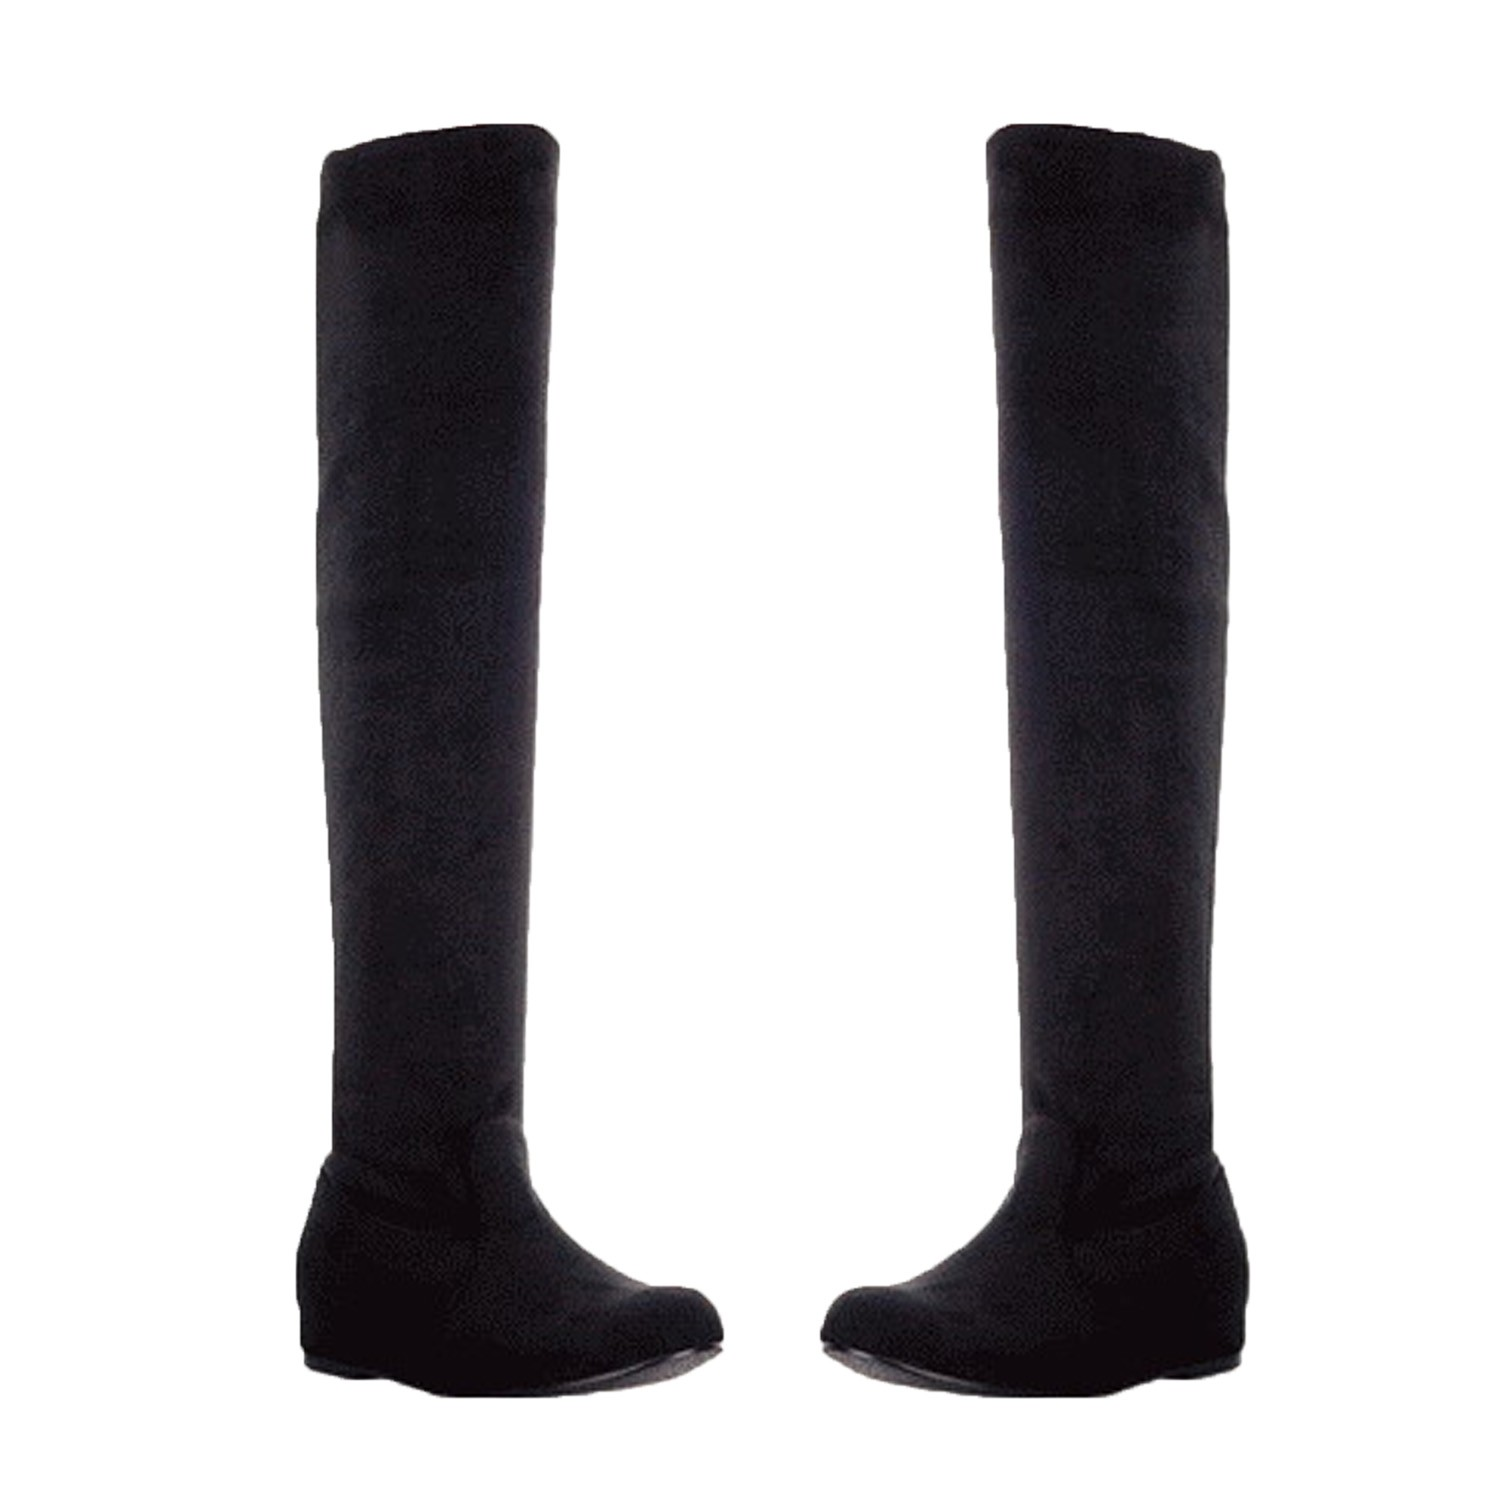 damen stiefel flach overknee schwarze langschaft winter boots overkneestiefel gr ebay. Black Bedroom Furniture Sets. Home Design Ideas